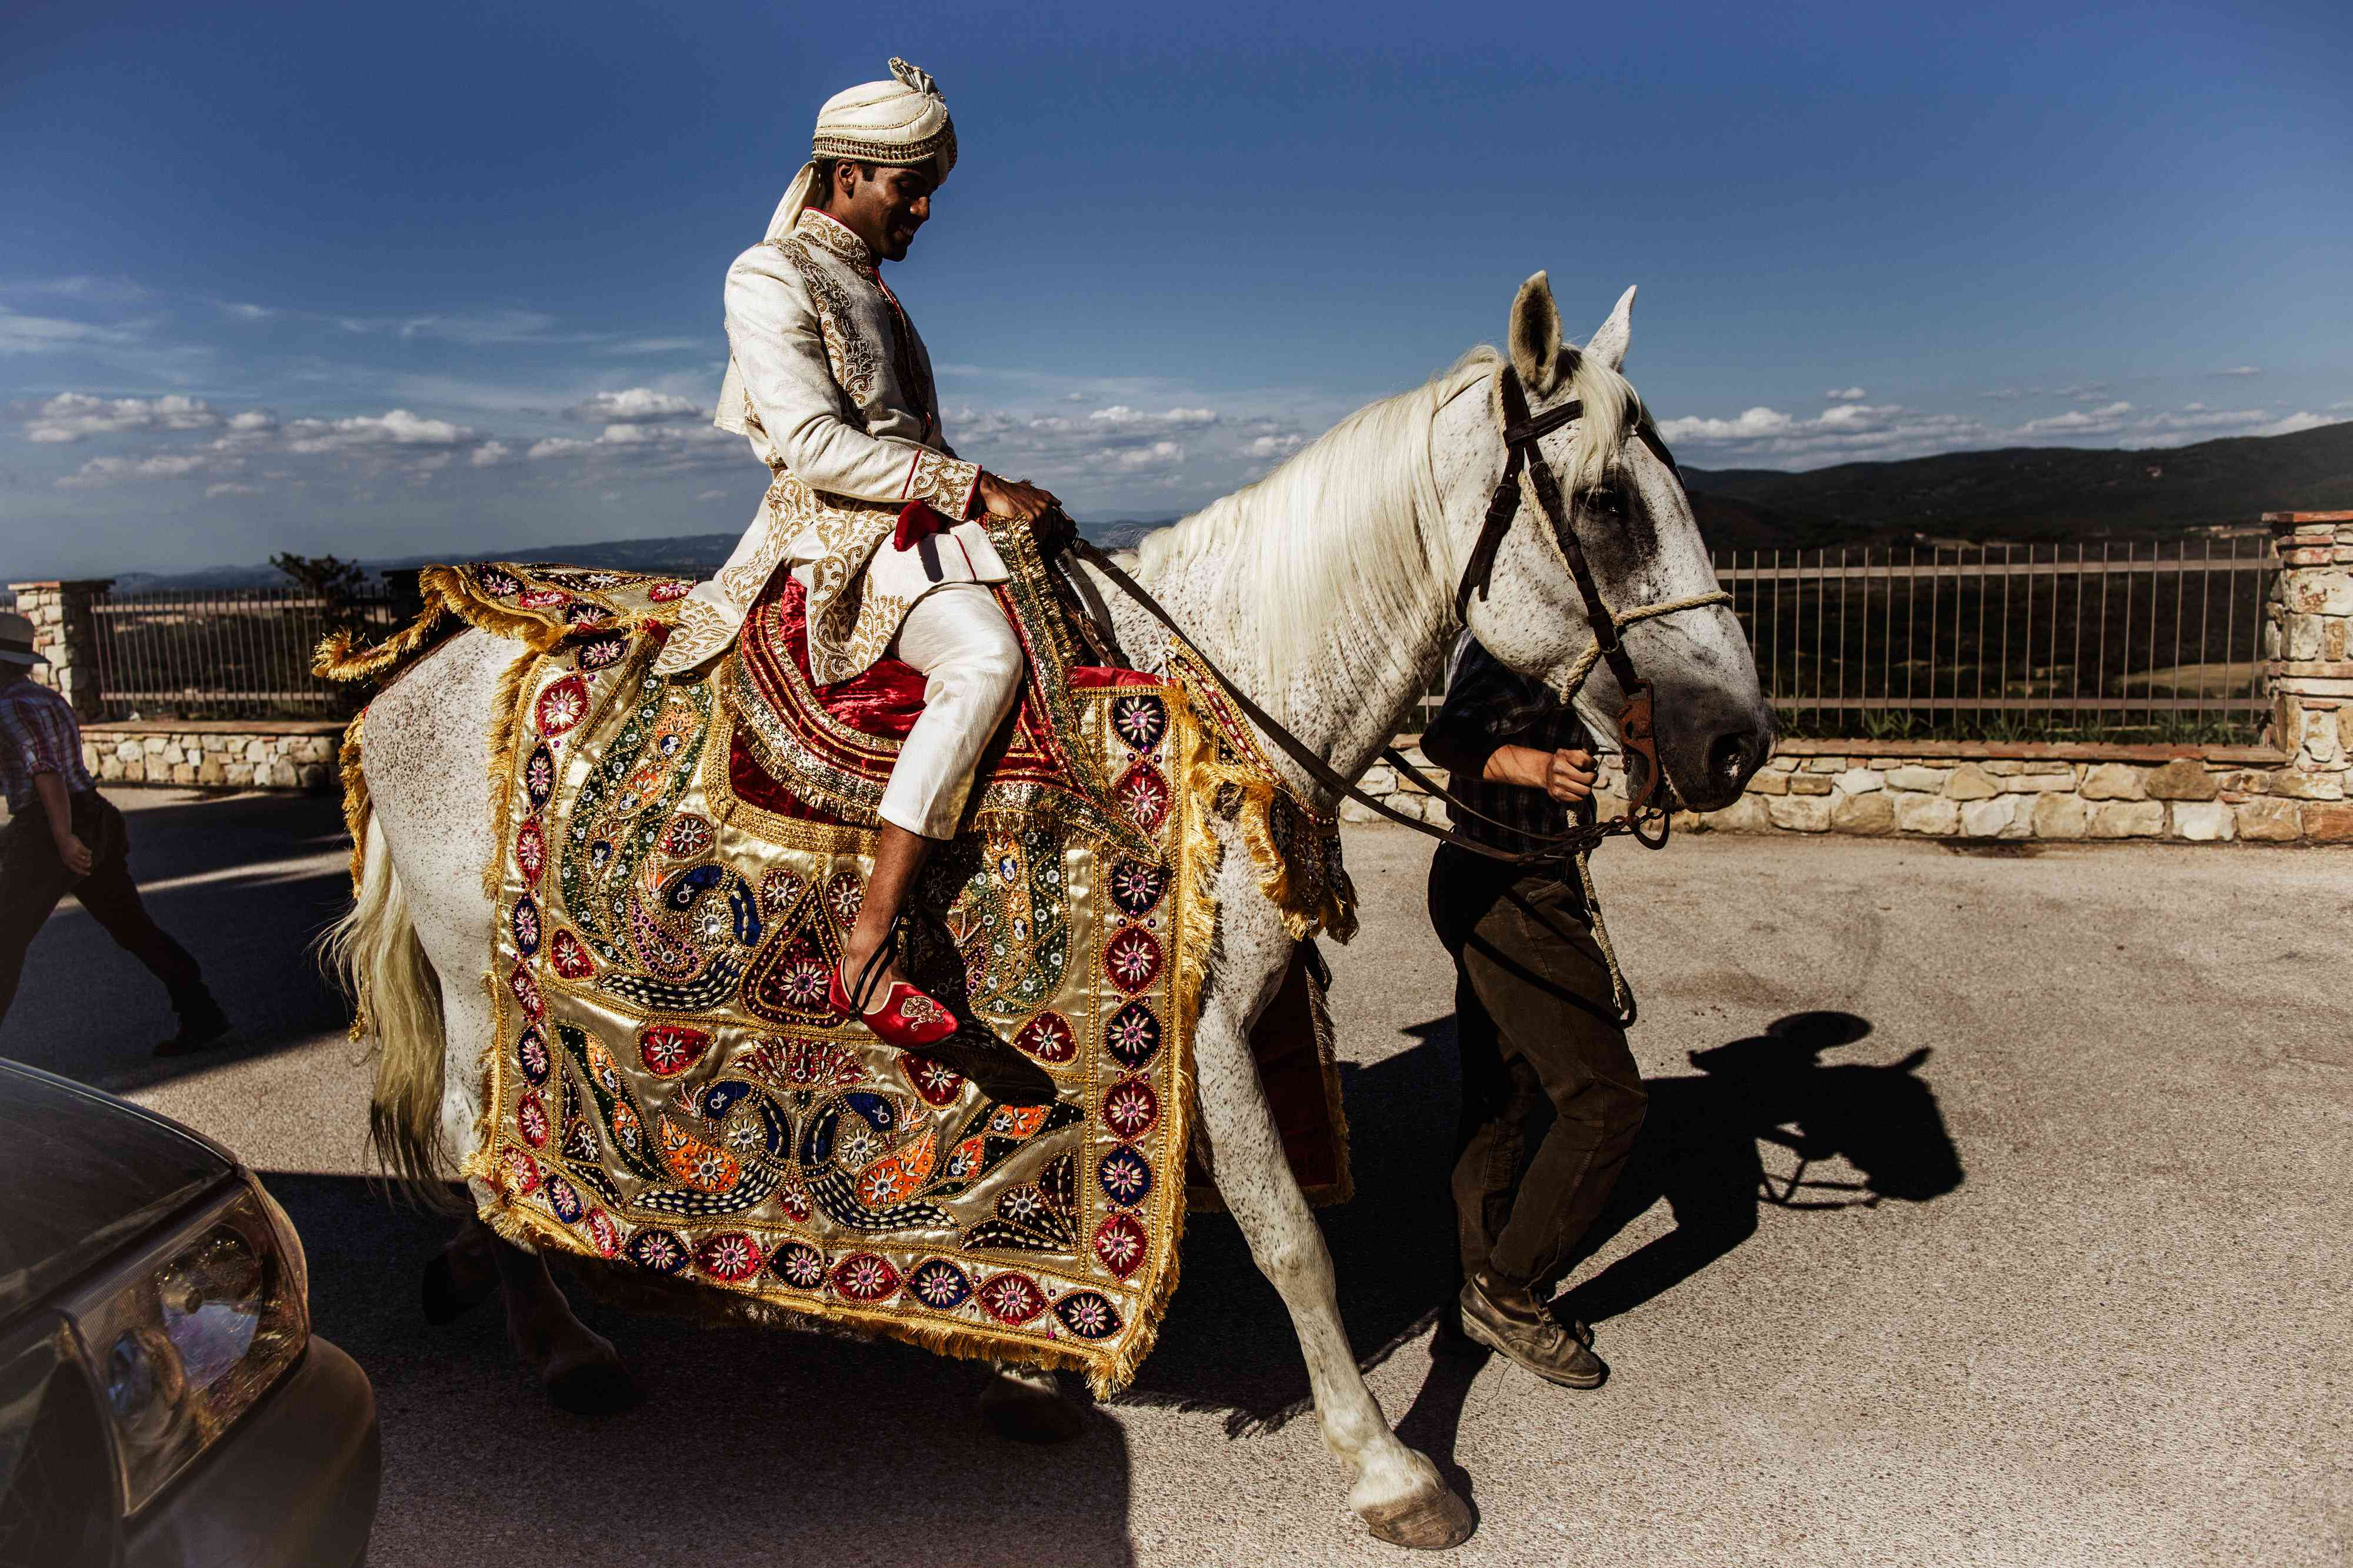 Indian groom on horse